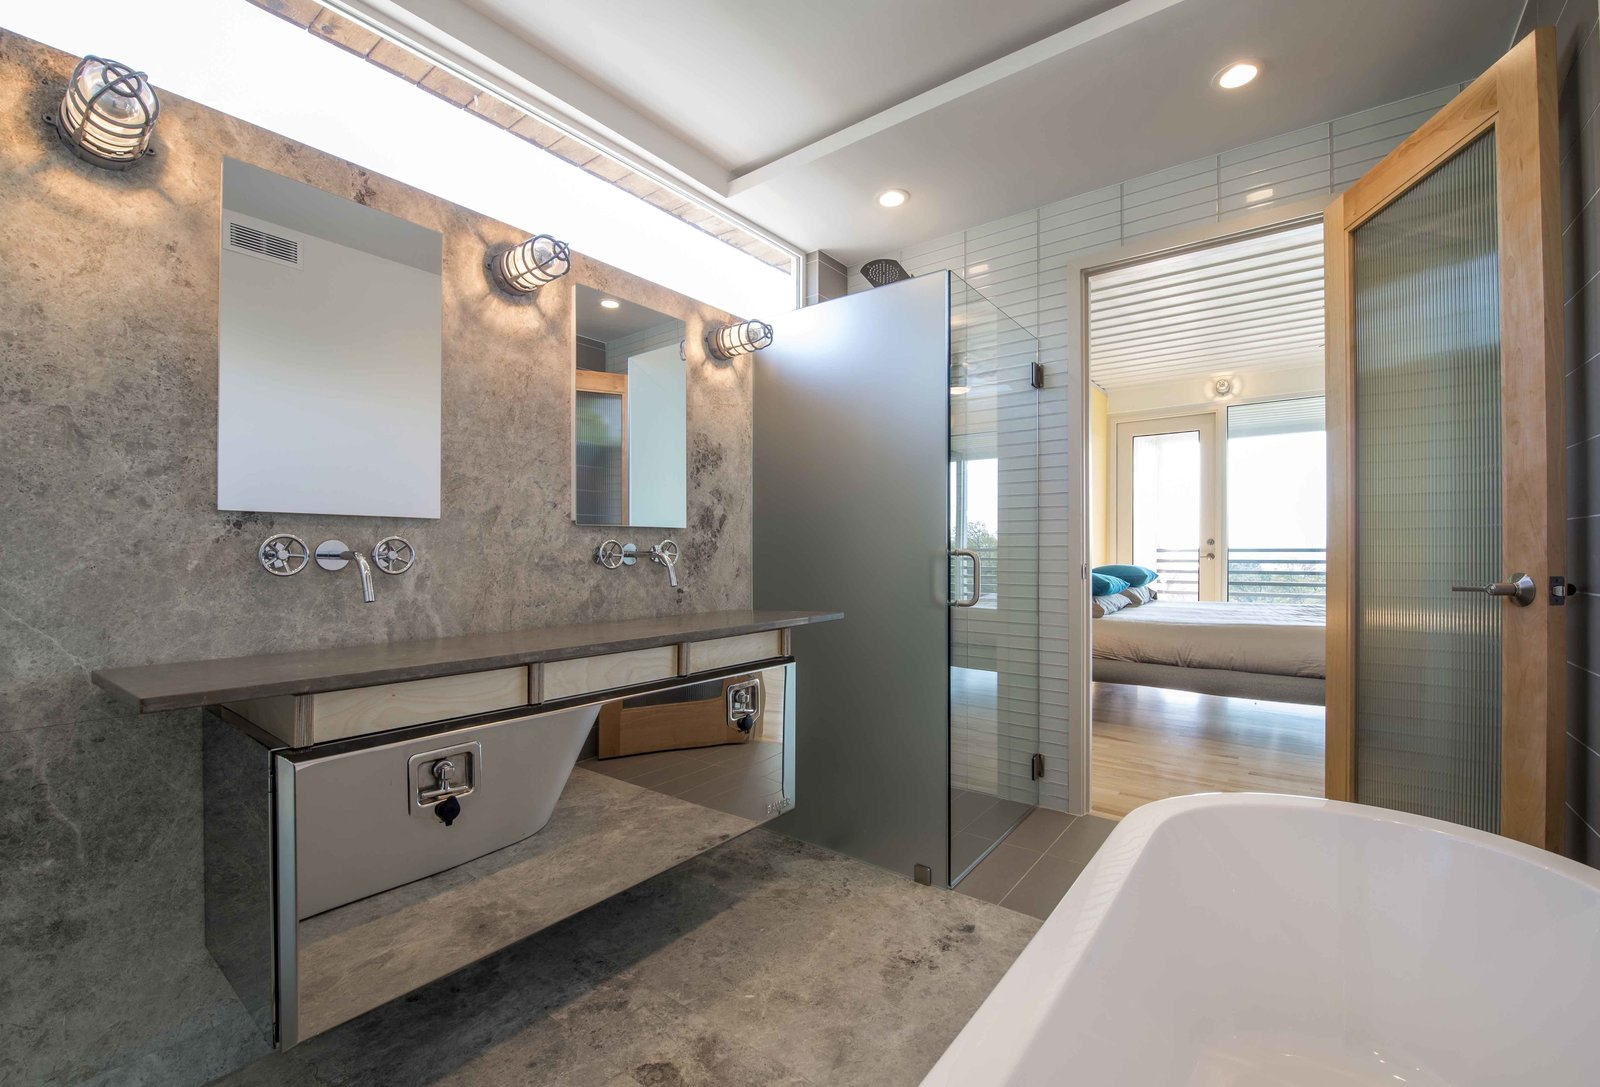 The industrial thread continues as a truck tool box converts into an elegant vanity in the master bathroom.  This House Was Built Out of 14 Shipping Containers by Esha Chhabra